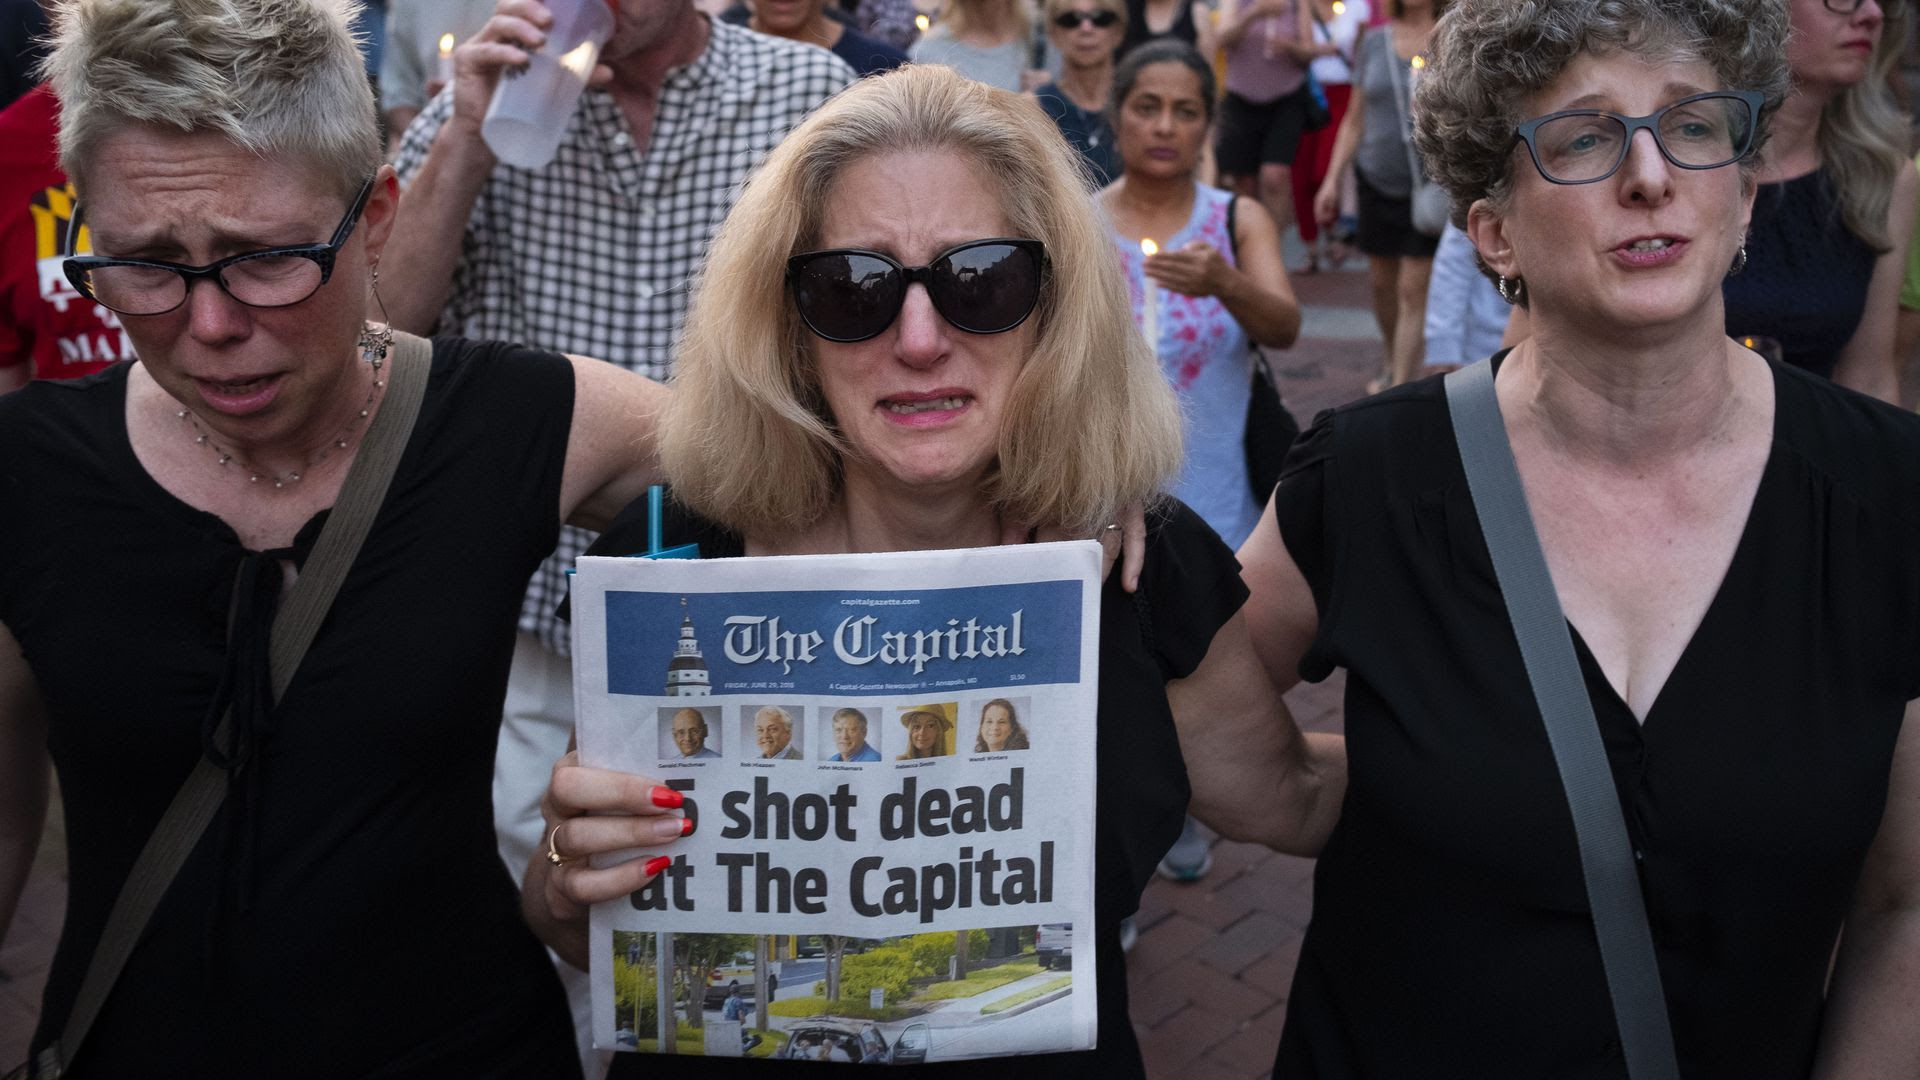 A woman holds a newspaper showing deaths at a newsroom in Maryland.